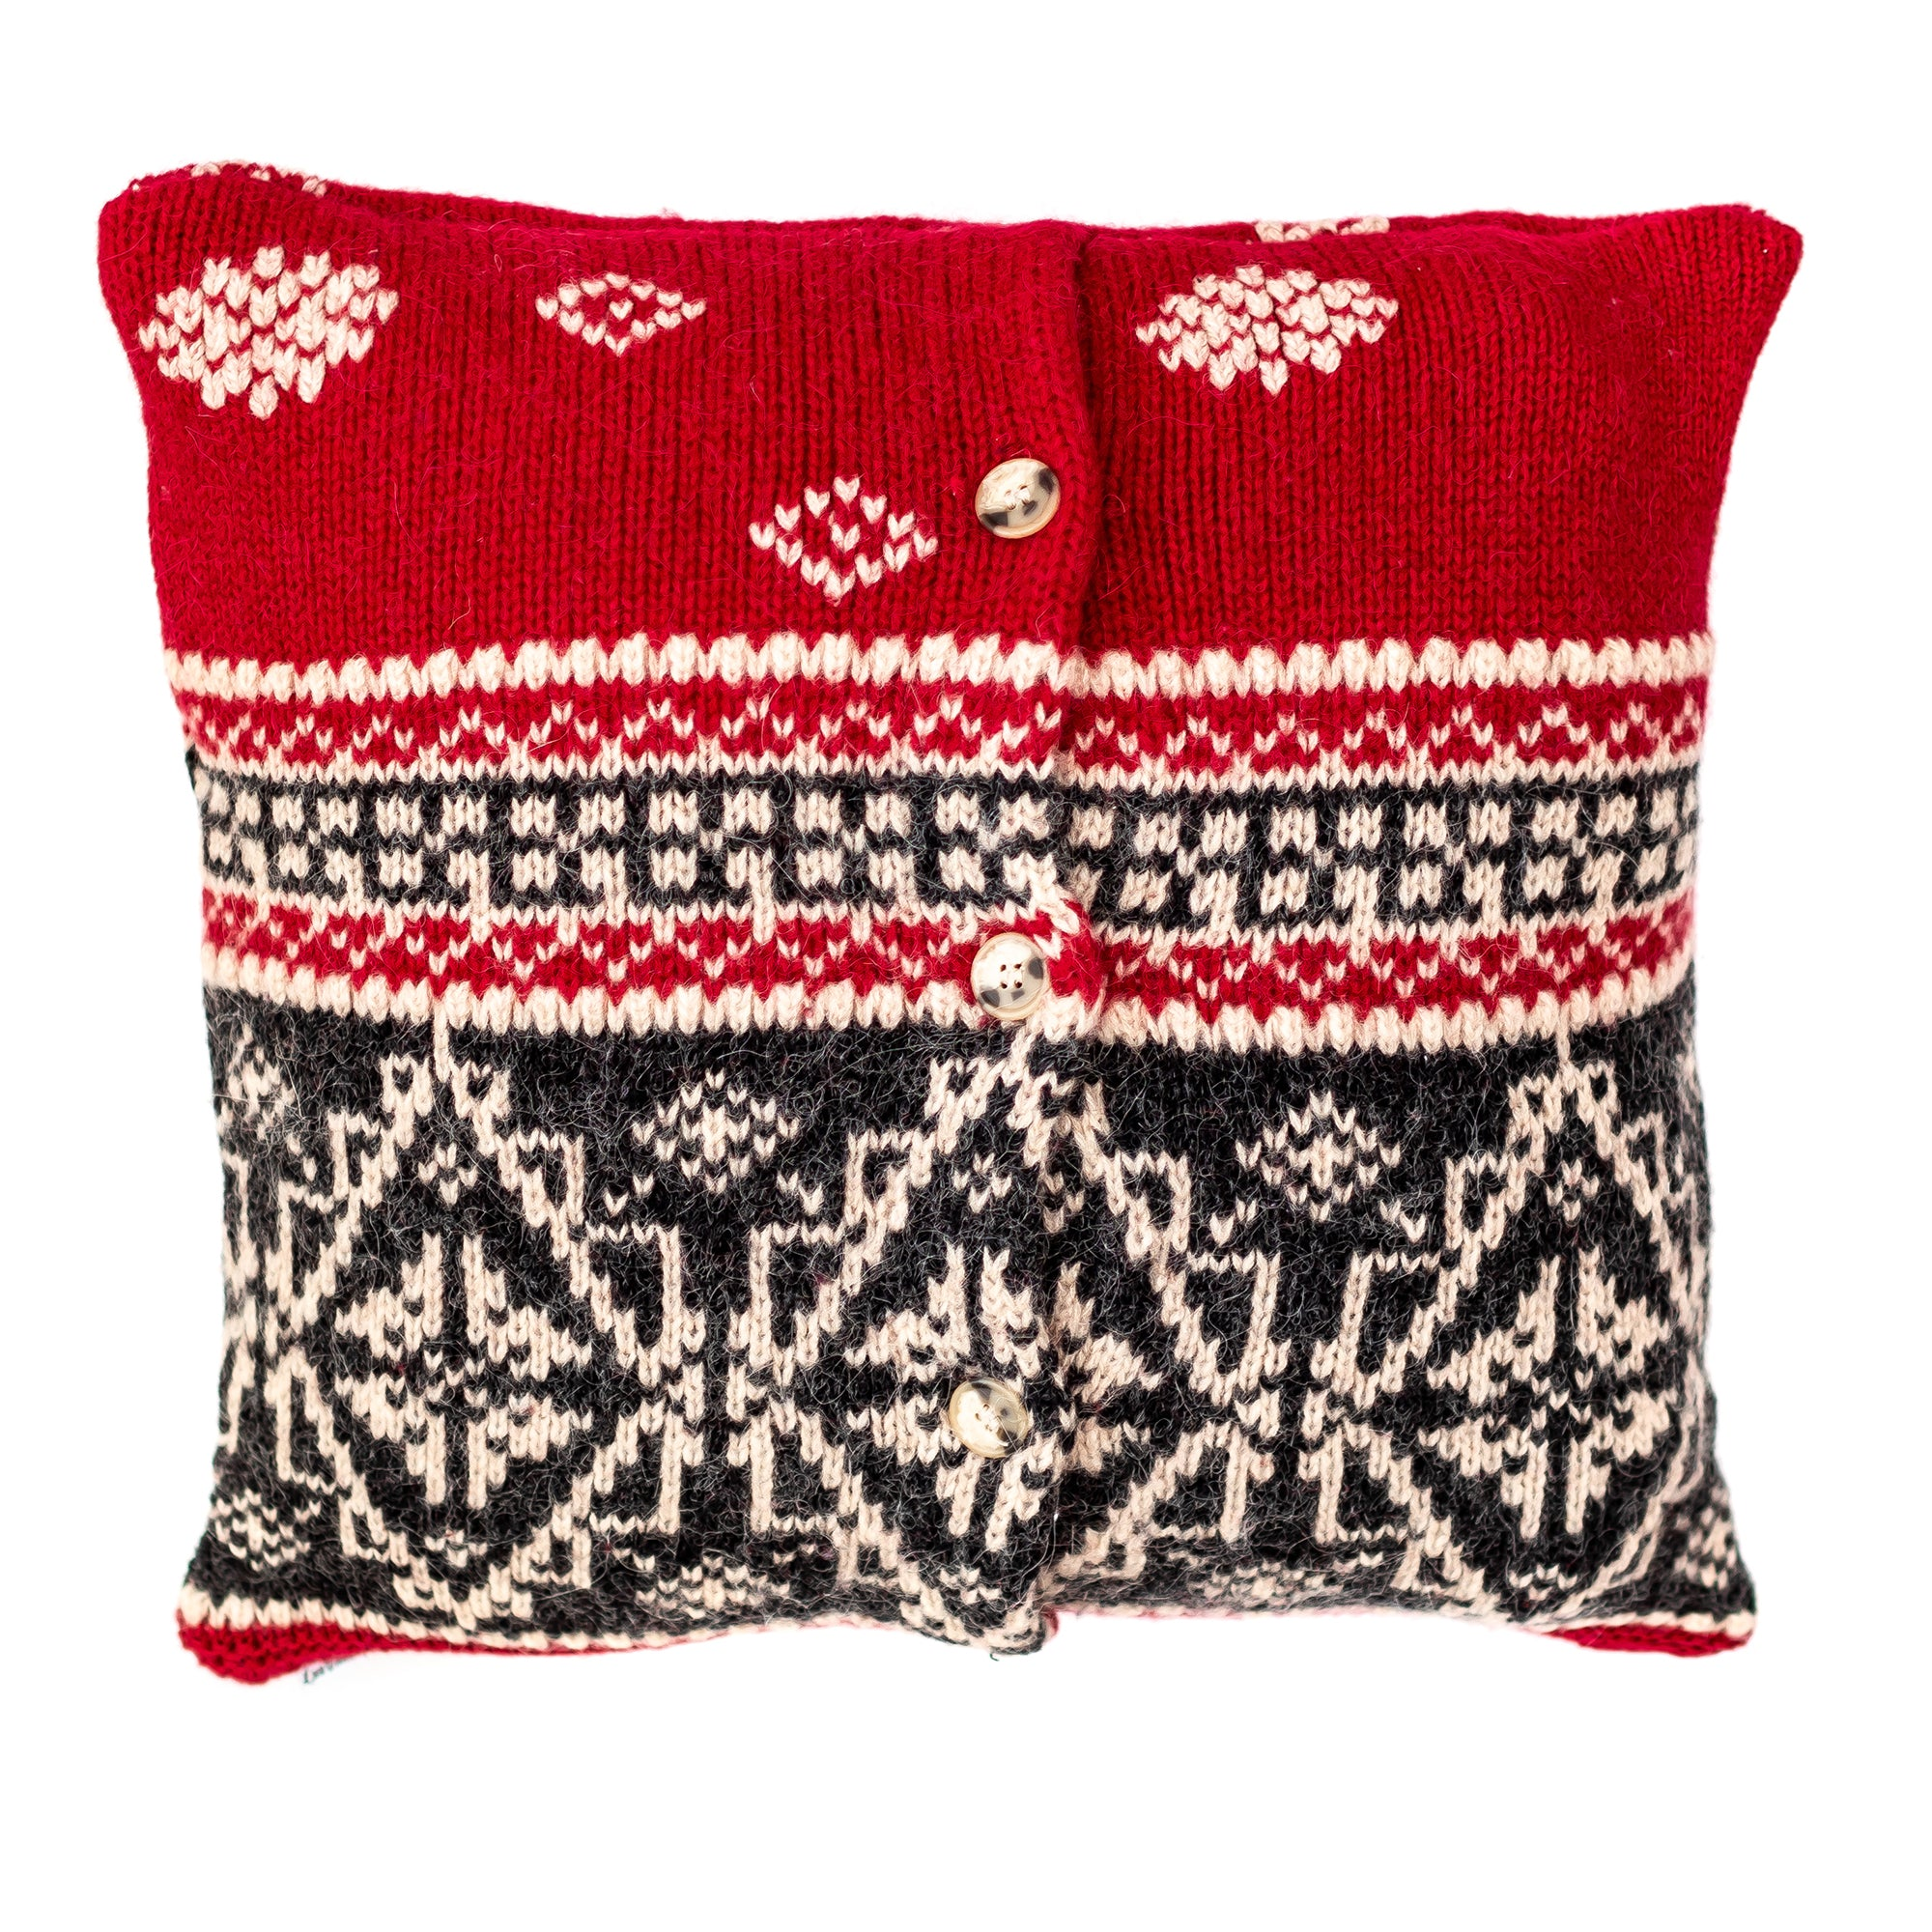 16x16 Winter Red Wool Pillow cover